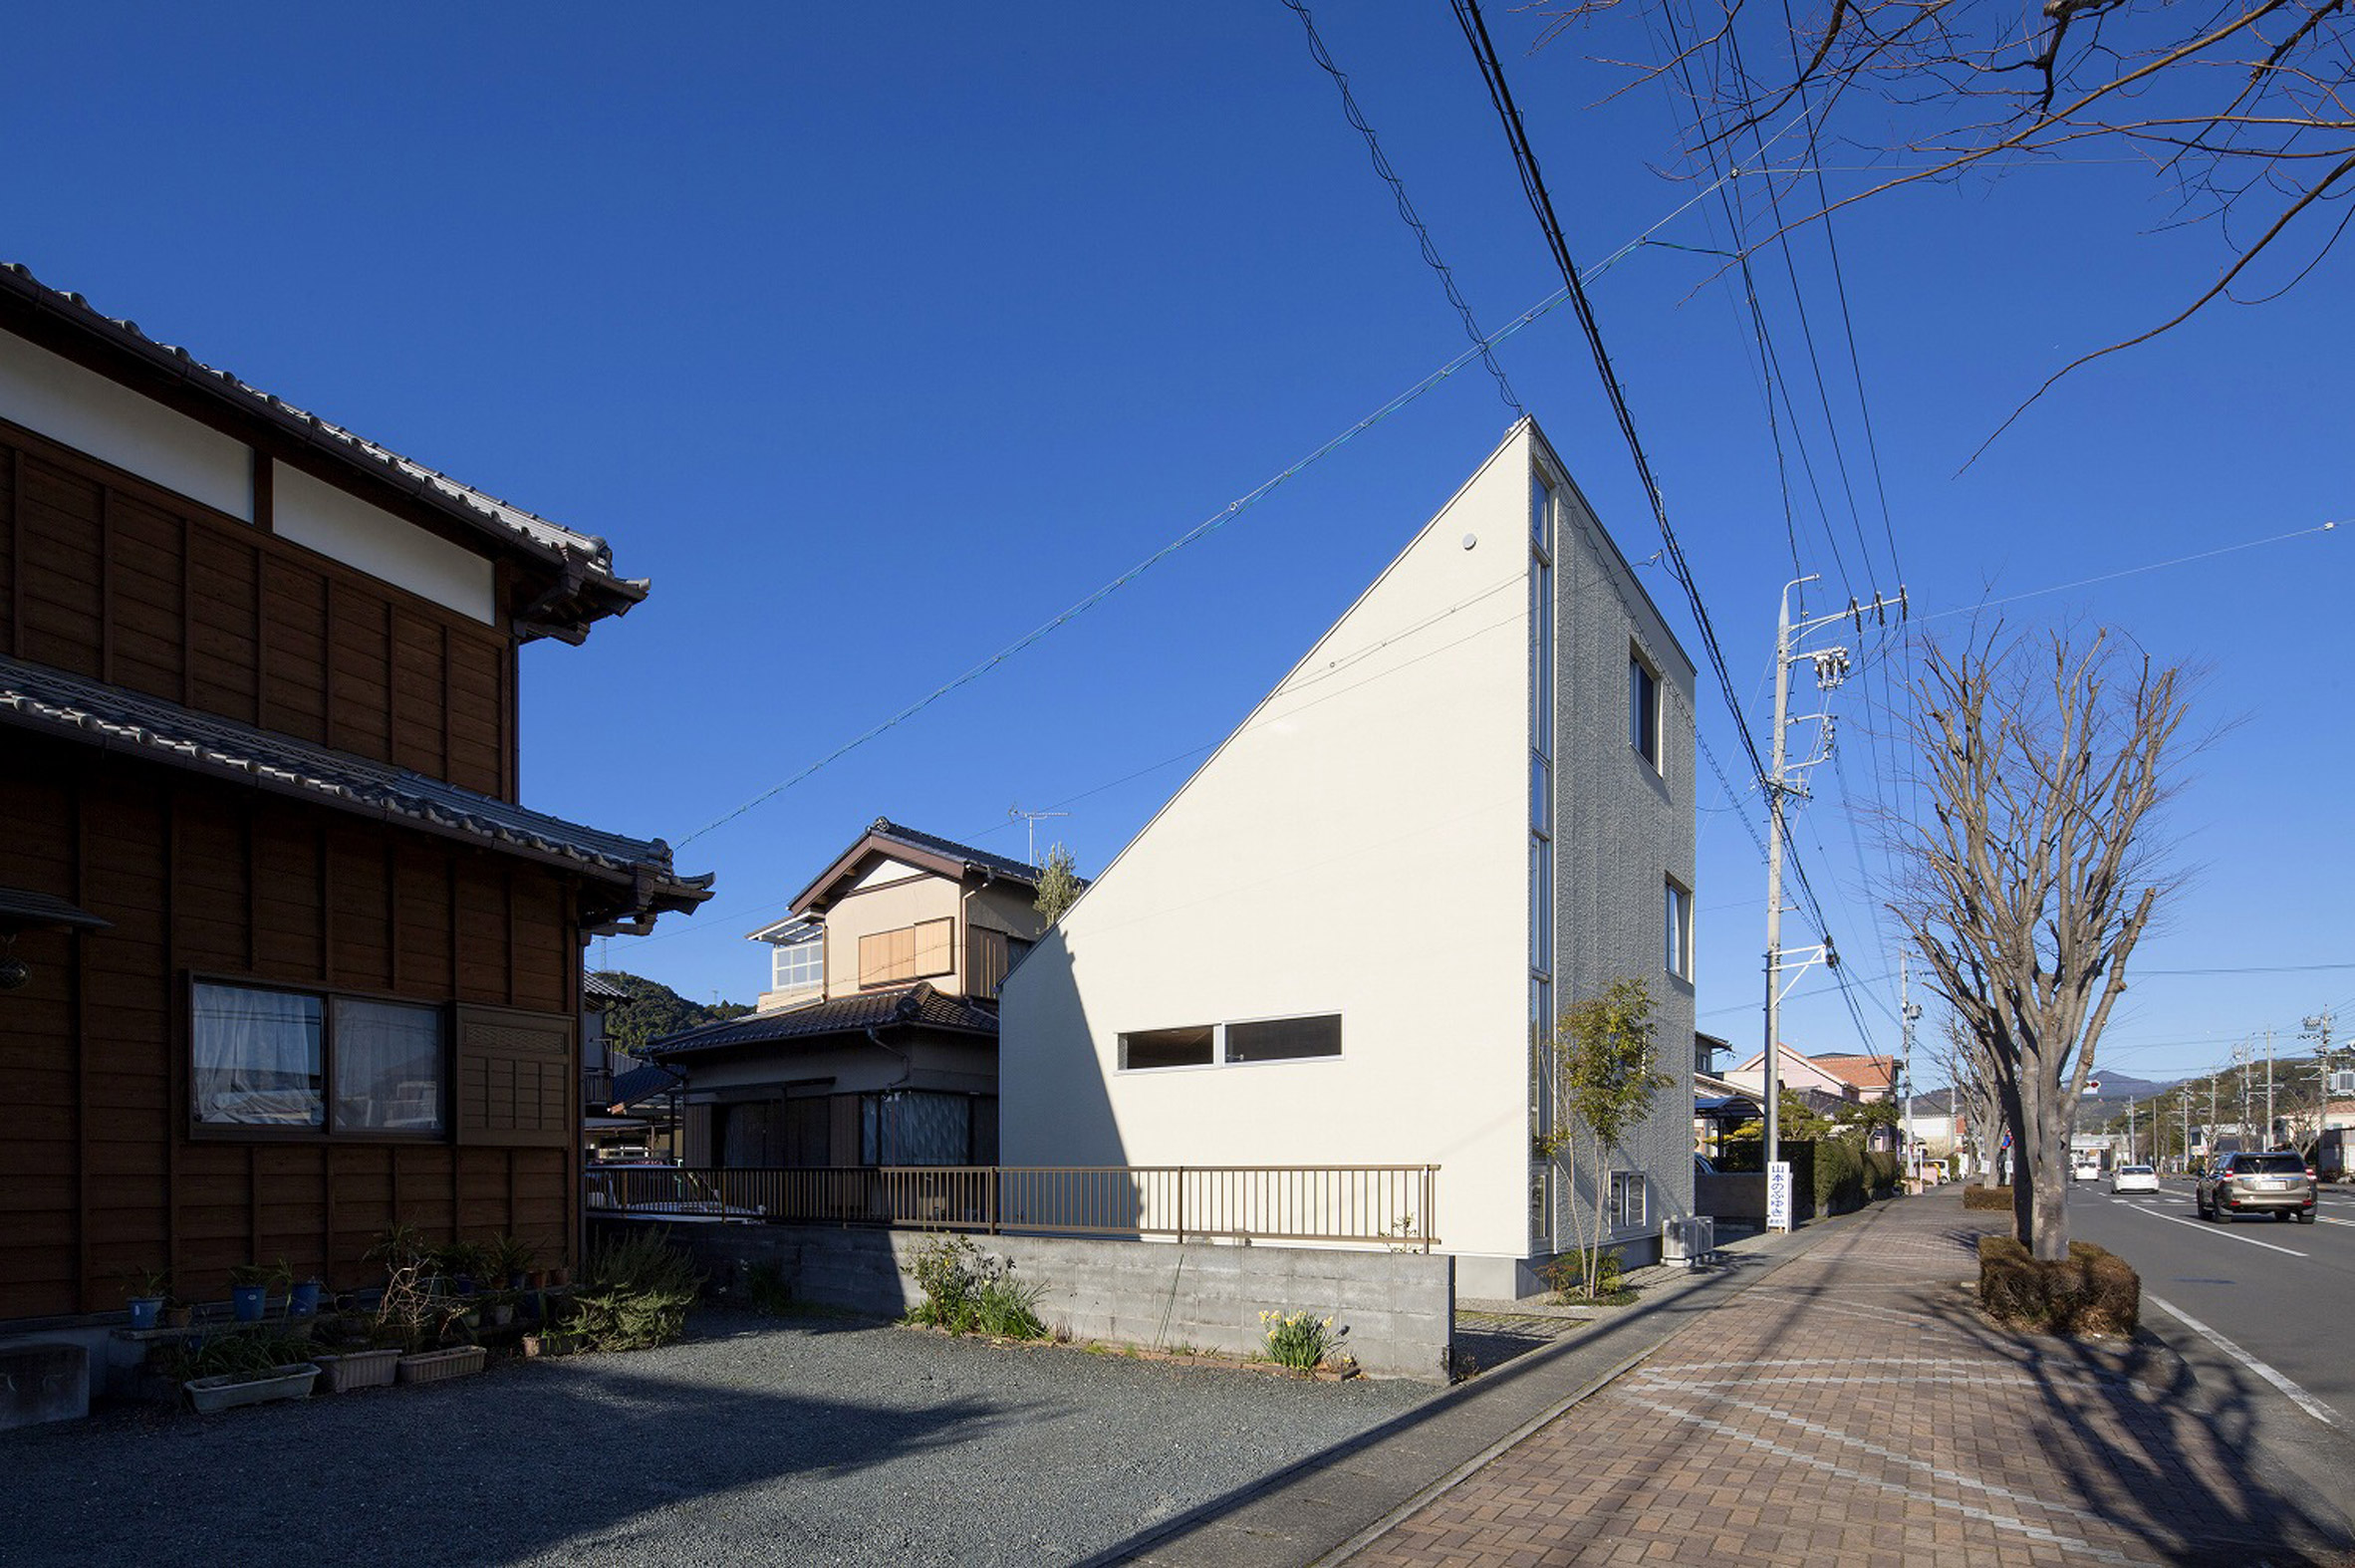 Yoshiyasu Mizuno uses sharply angled roof to disguise scale of Terada House